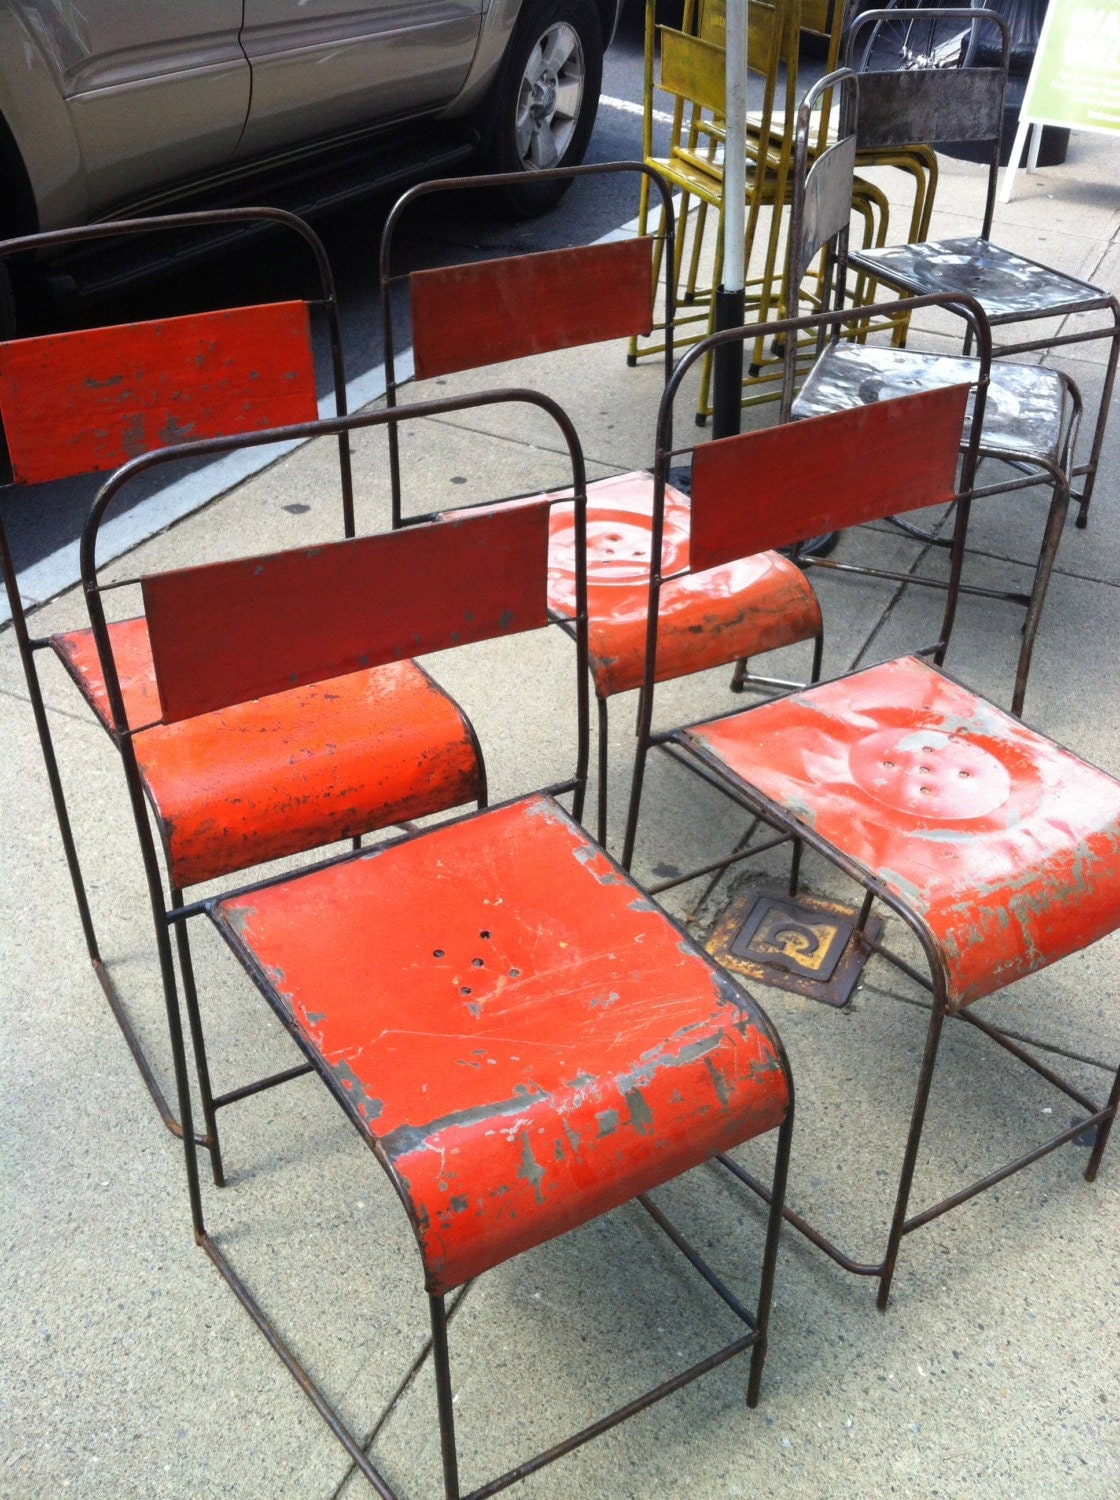 Hold Vintage Metal Stacking Industrial Chairs Old Orange Paint